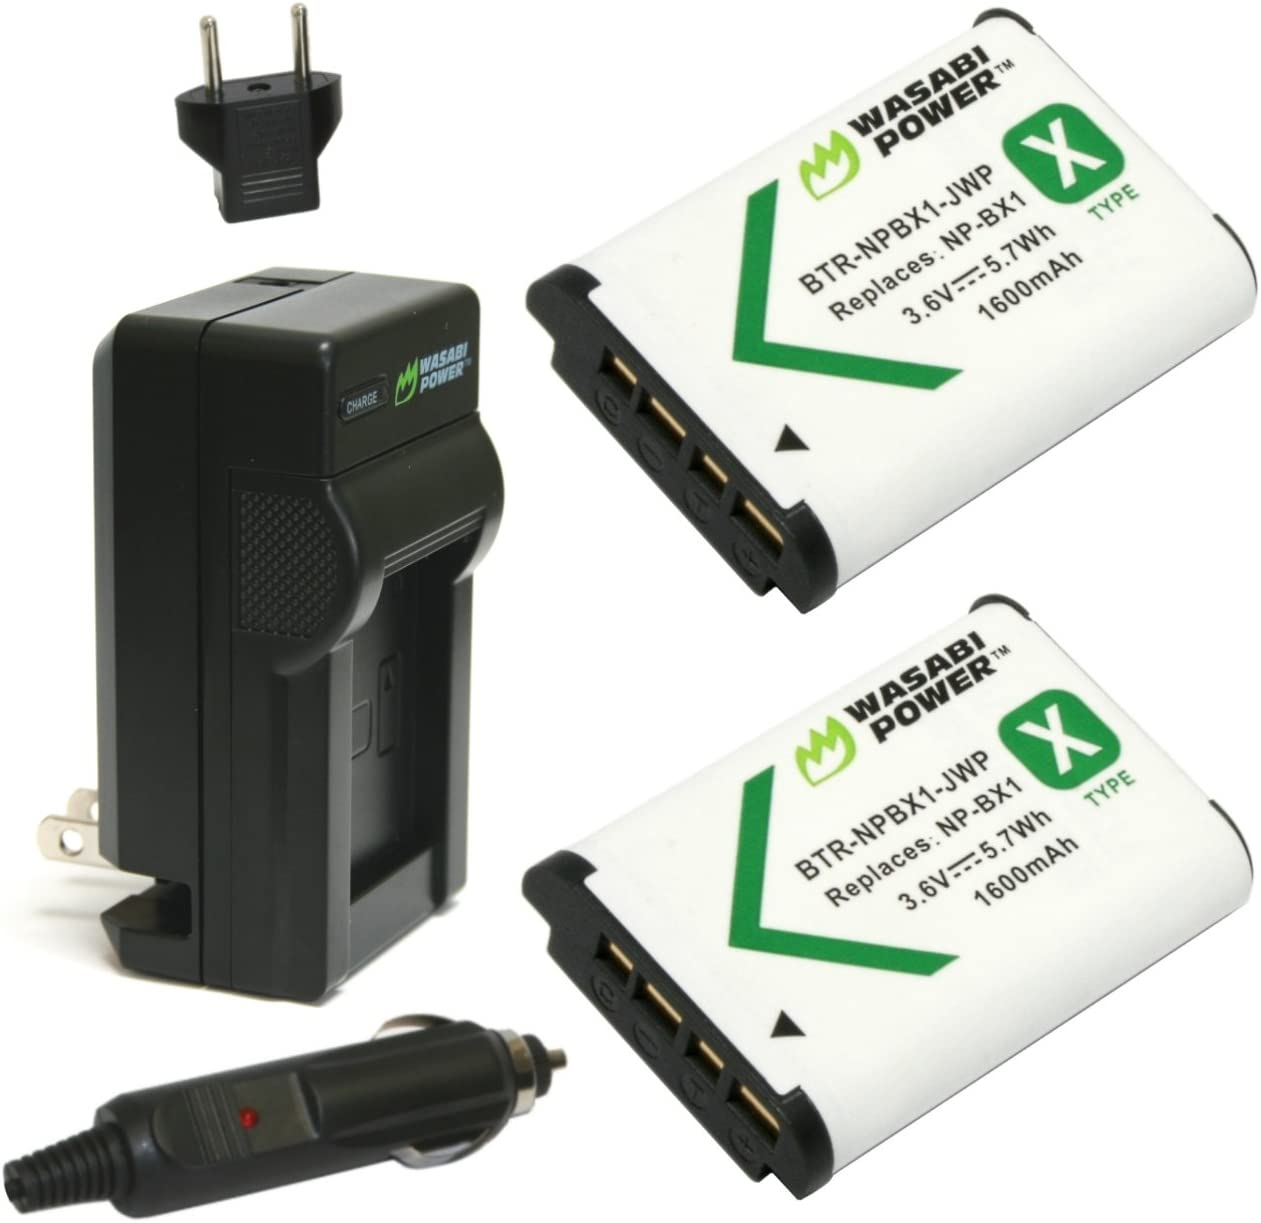 DSC-WX300 Battery Charger Kit for Sony Cybershot DSC-HX90 DSC-HX350